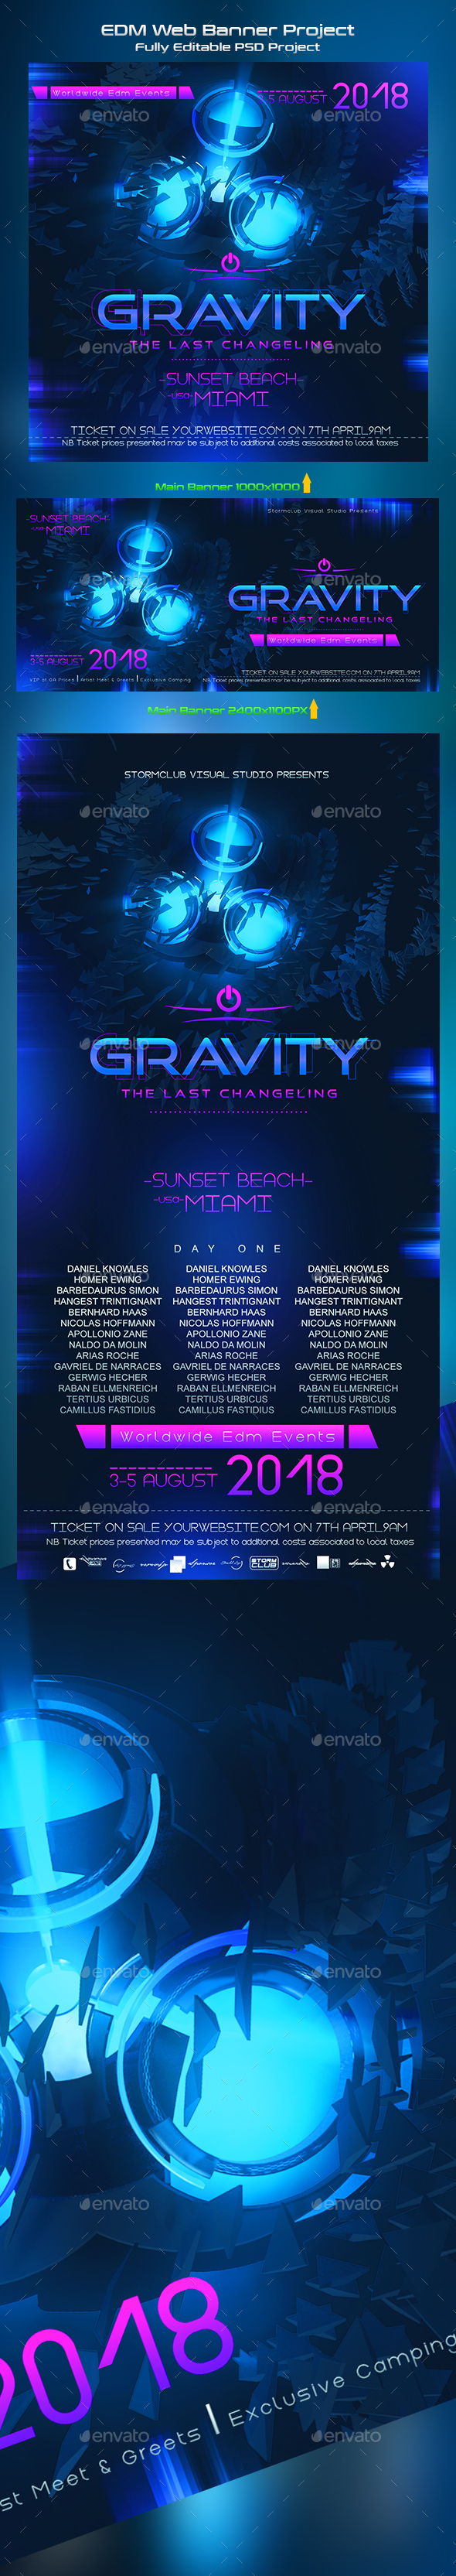 Gravity EDM Banner Template - Banners & Ads Web Elements